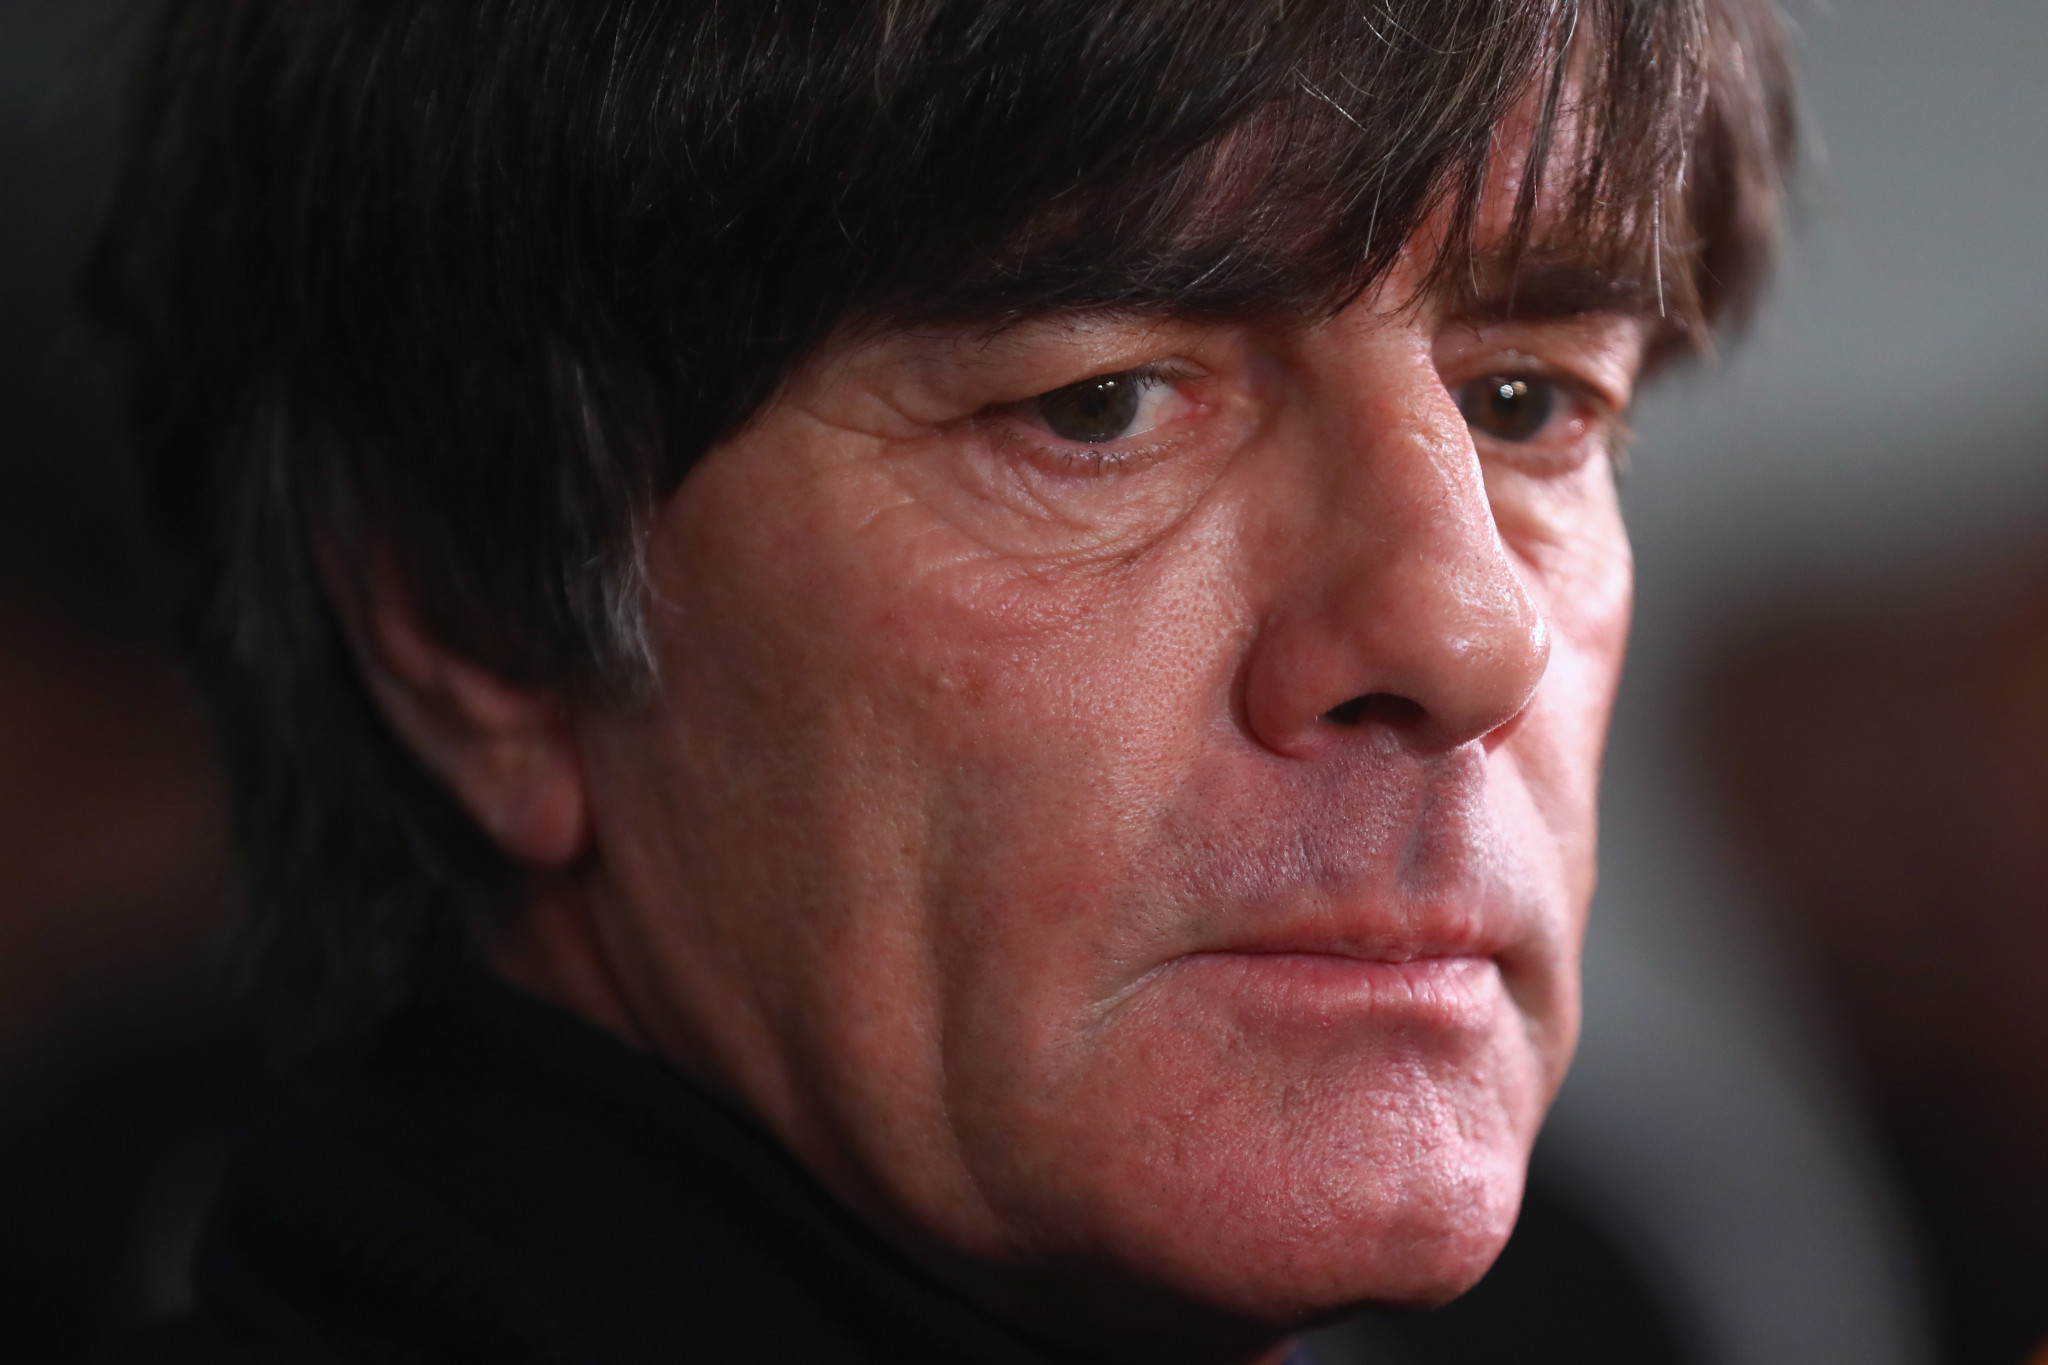 England and Germany latest nations to qualify for Russia 2018